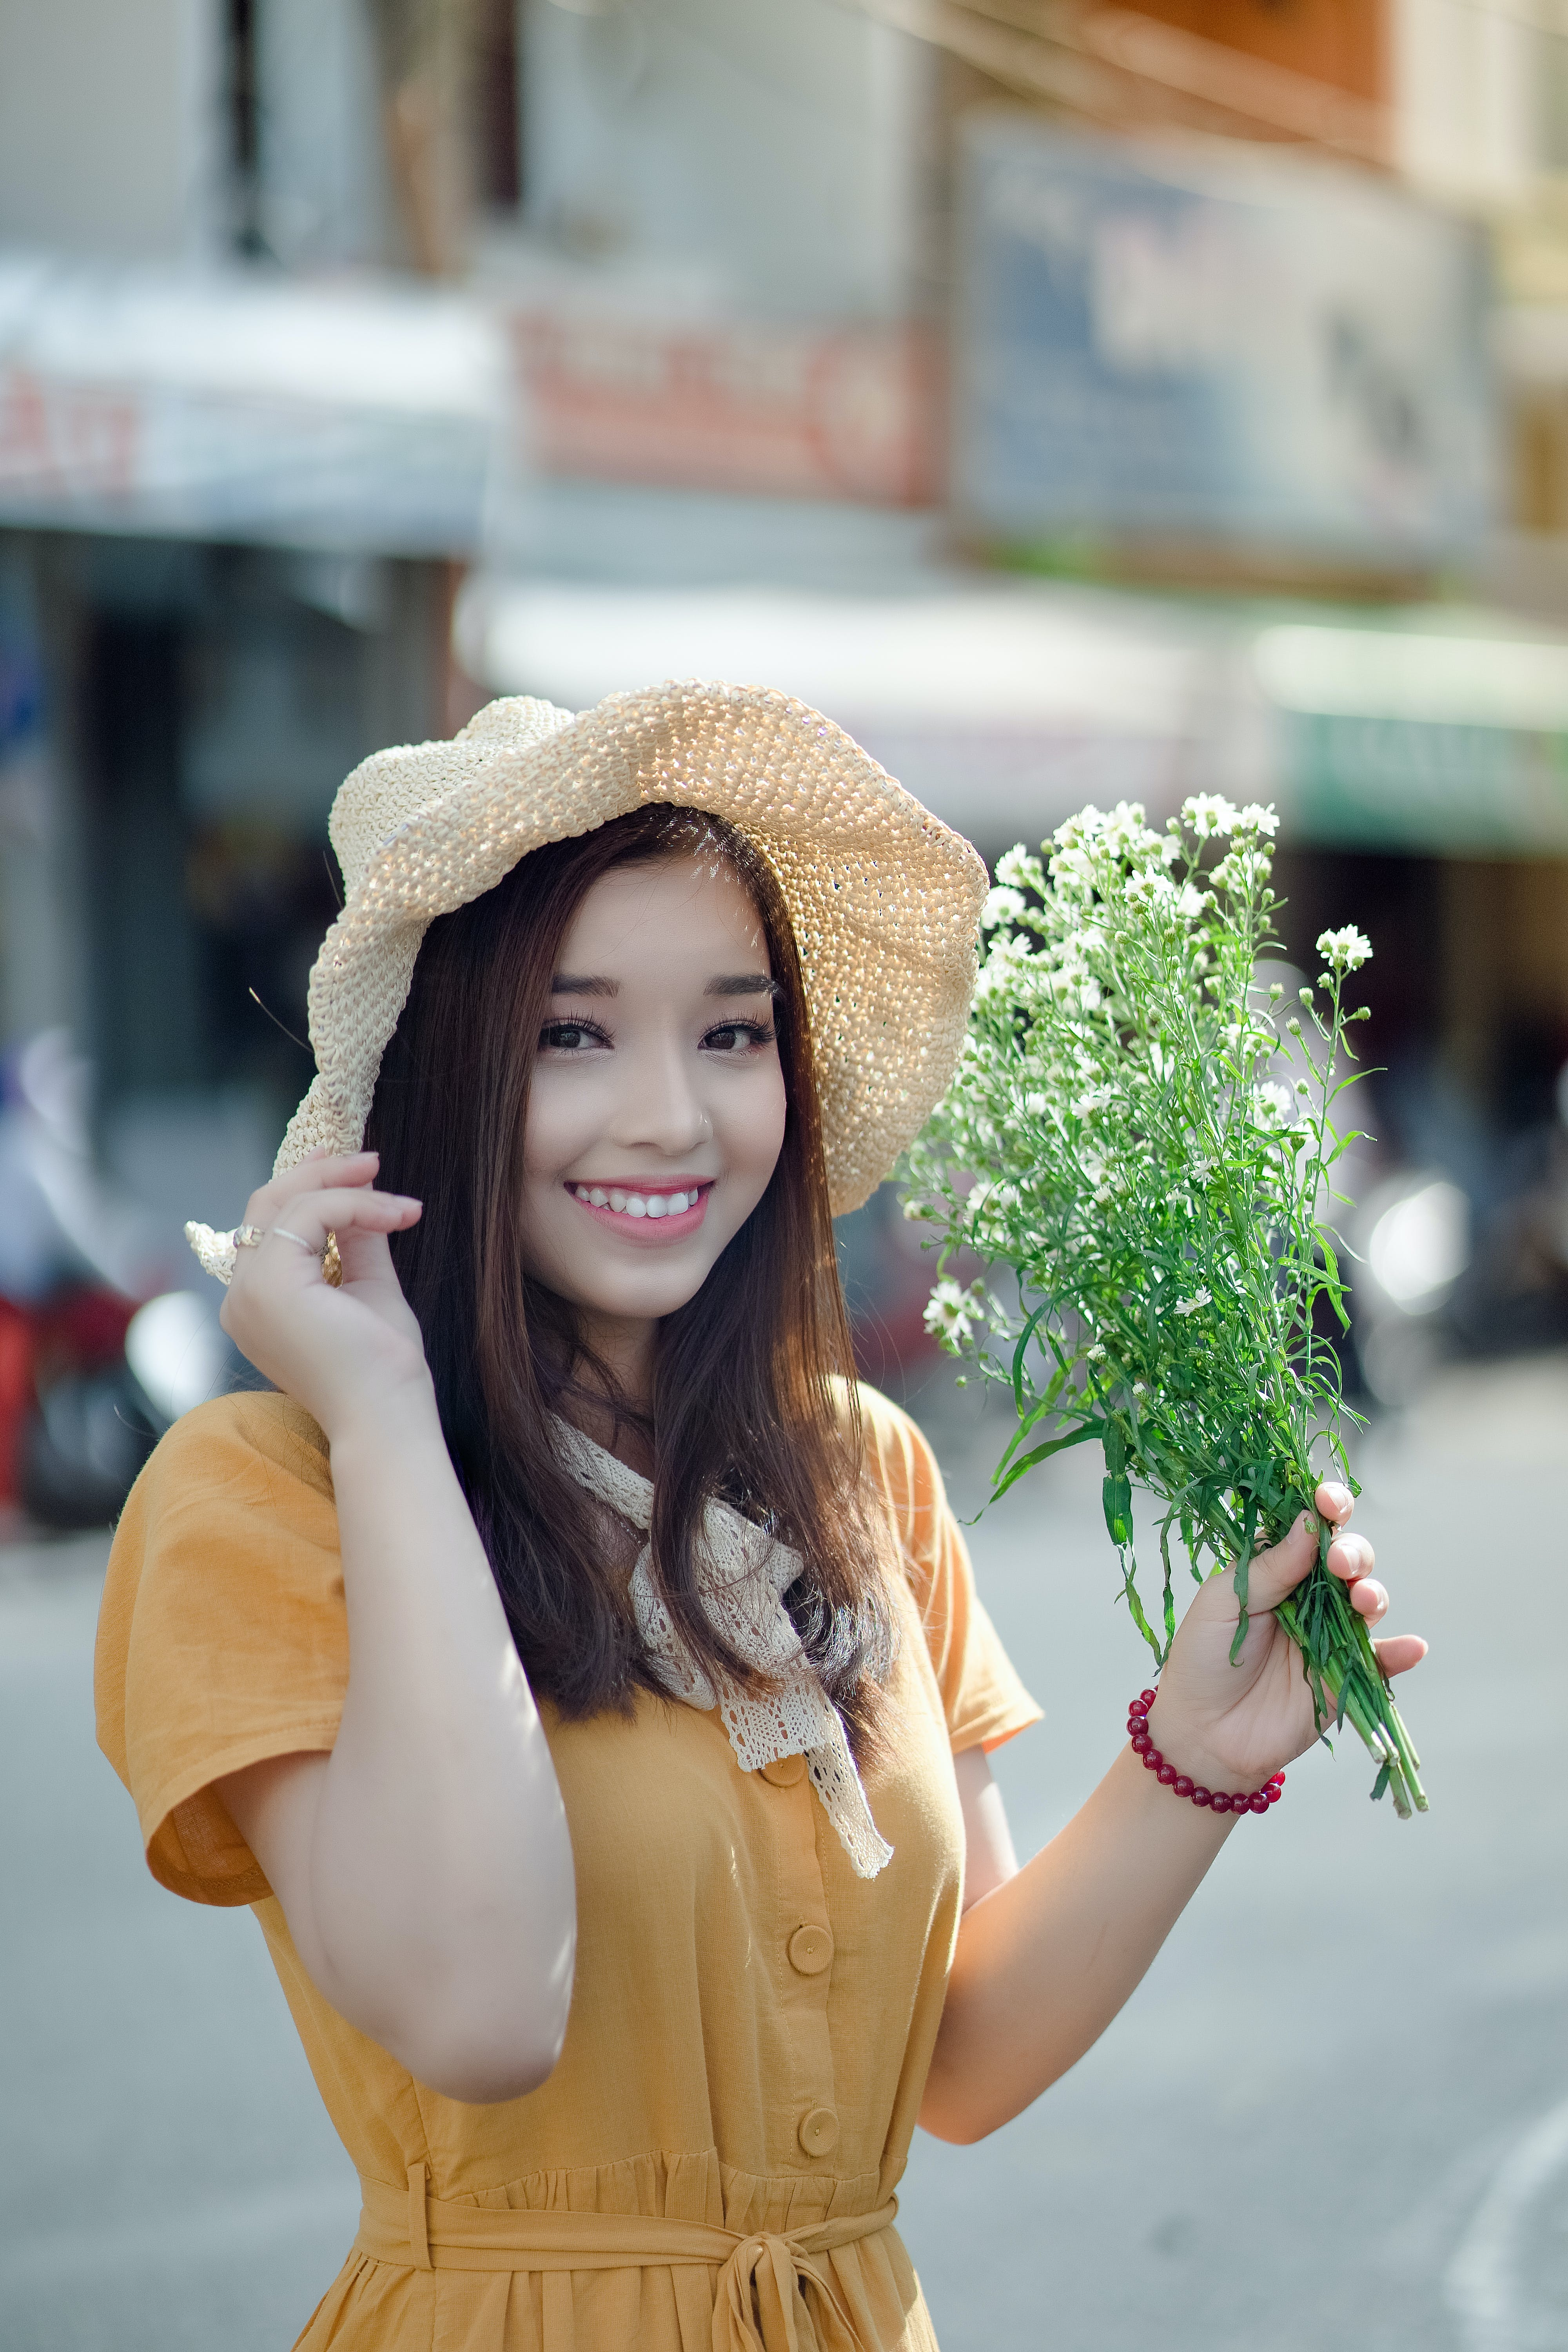 Smiling Woman Wearing Hat Holding White Petaled Flower Standing on Street